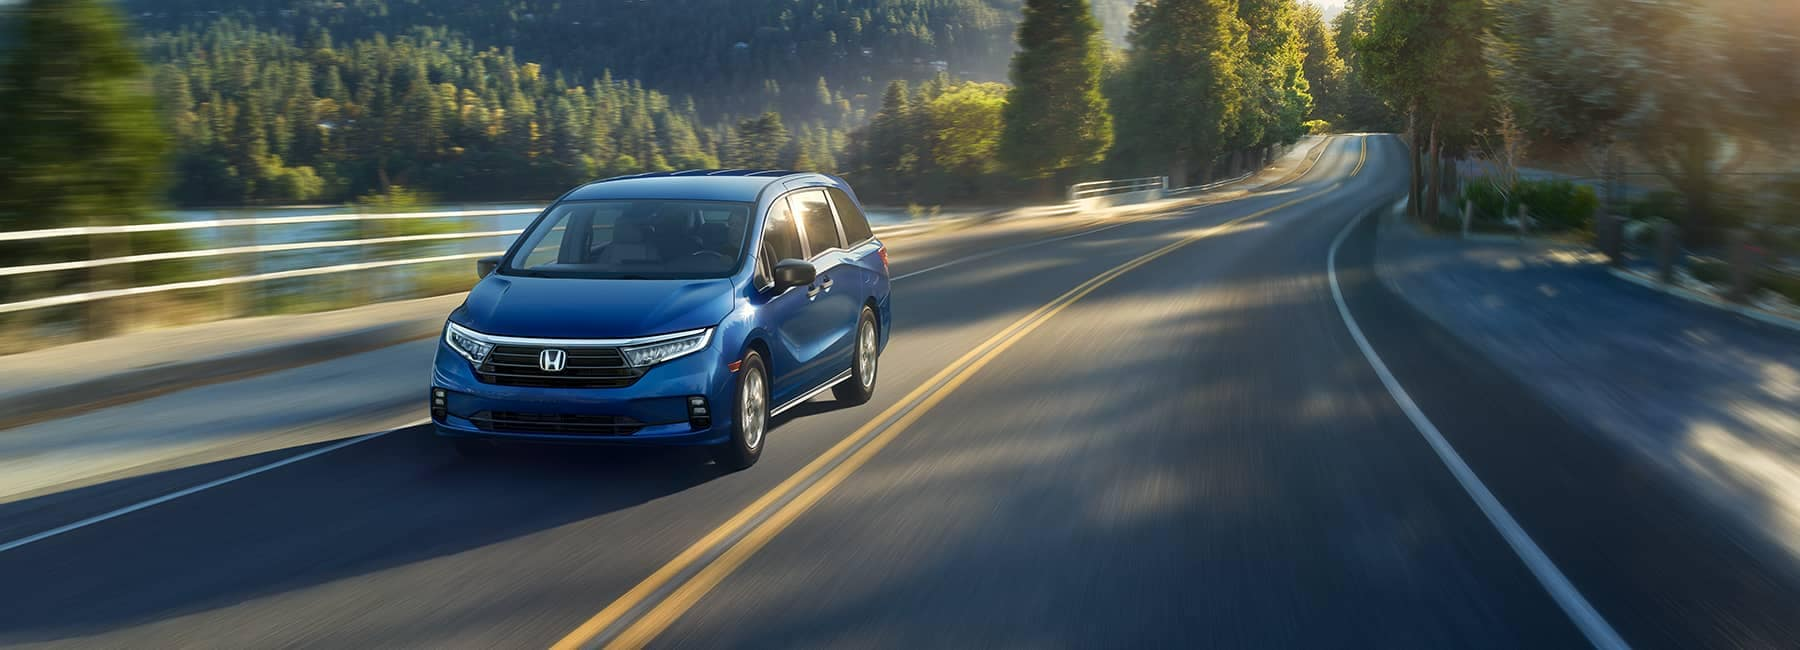 2021 Sapphire Blue Honda Odyssey driving along a mountain road